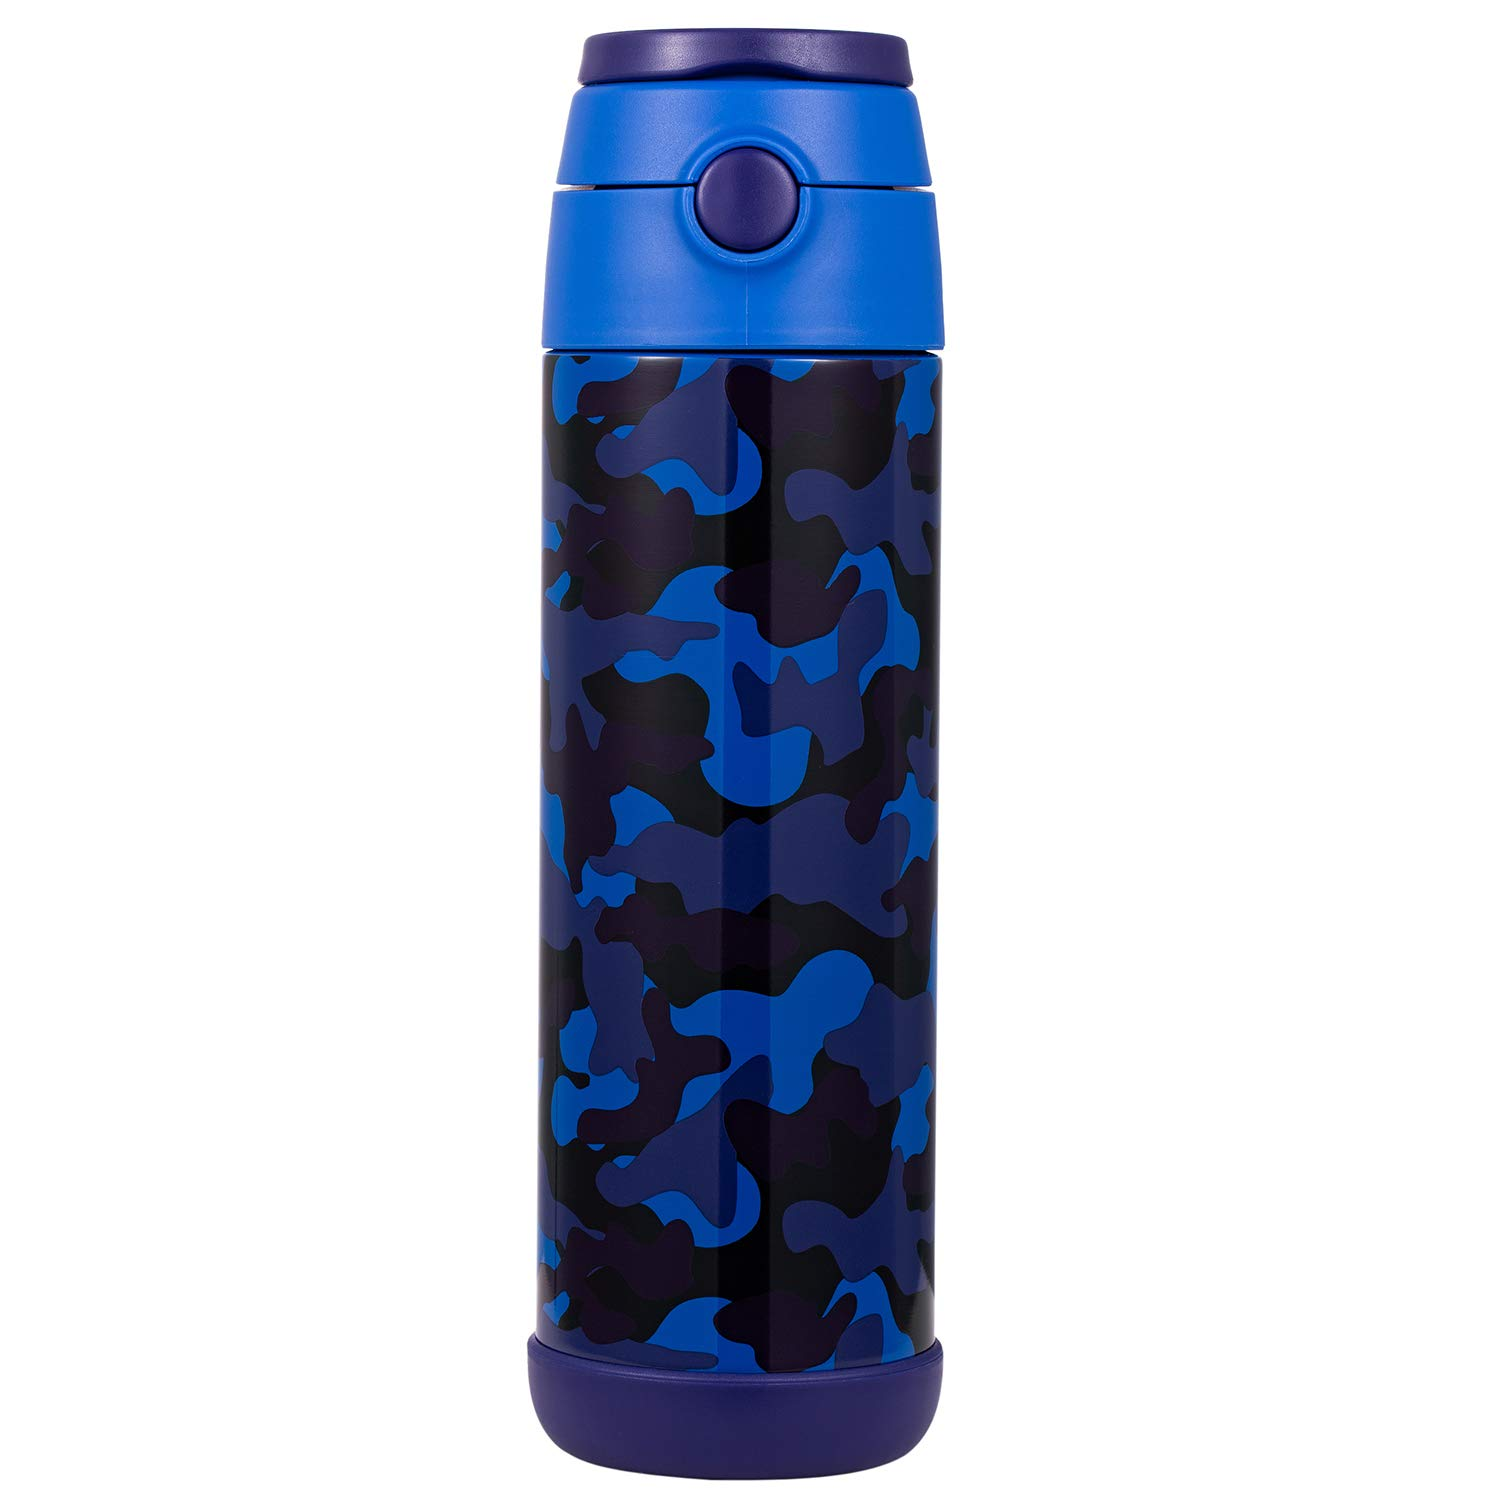 Snug Flask for Kids (500ml) - Vacuum Insulated Water Bottle with Straw (Camo)